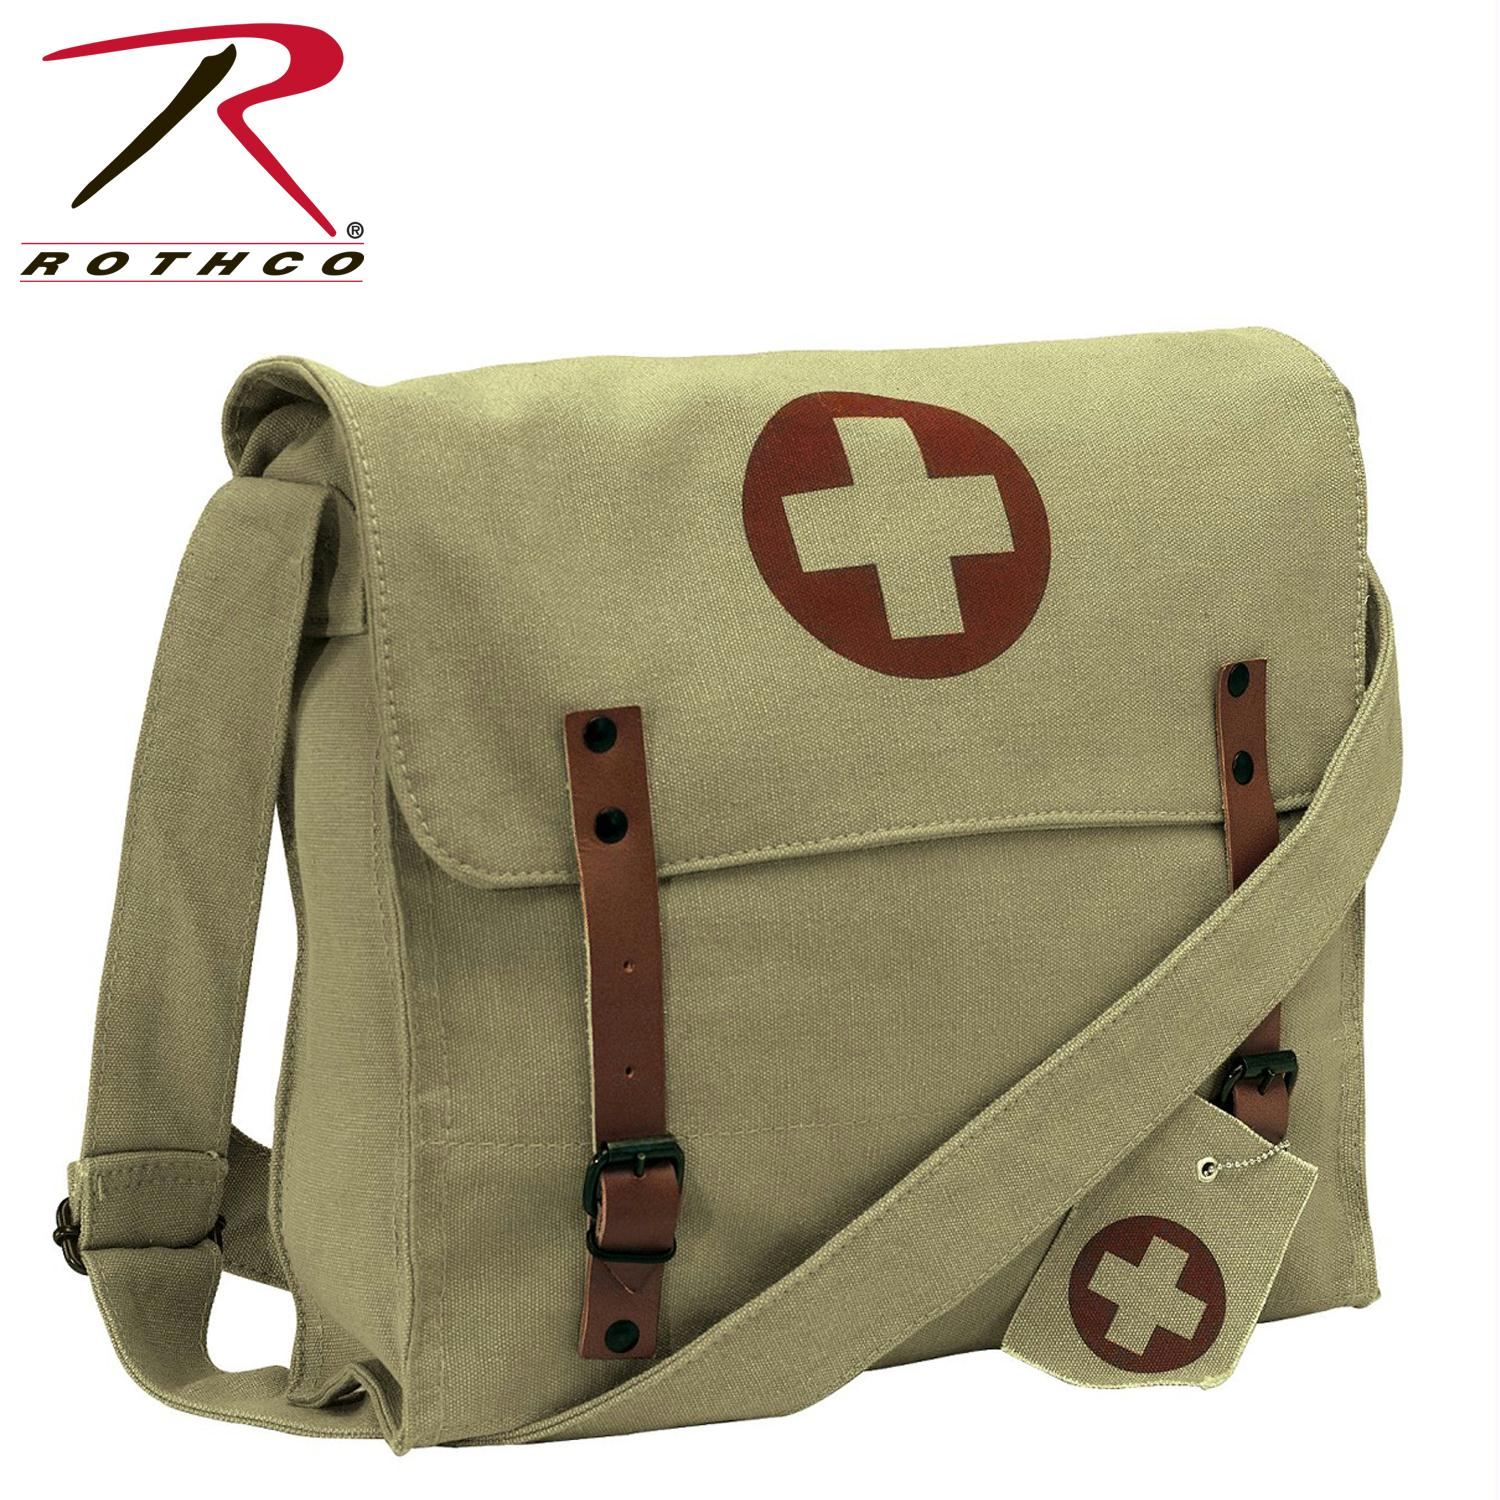 Rothco Vintage Medic Bag w/ Cross - Khaki